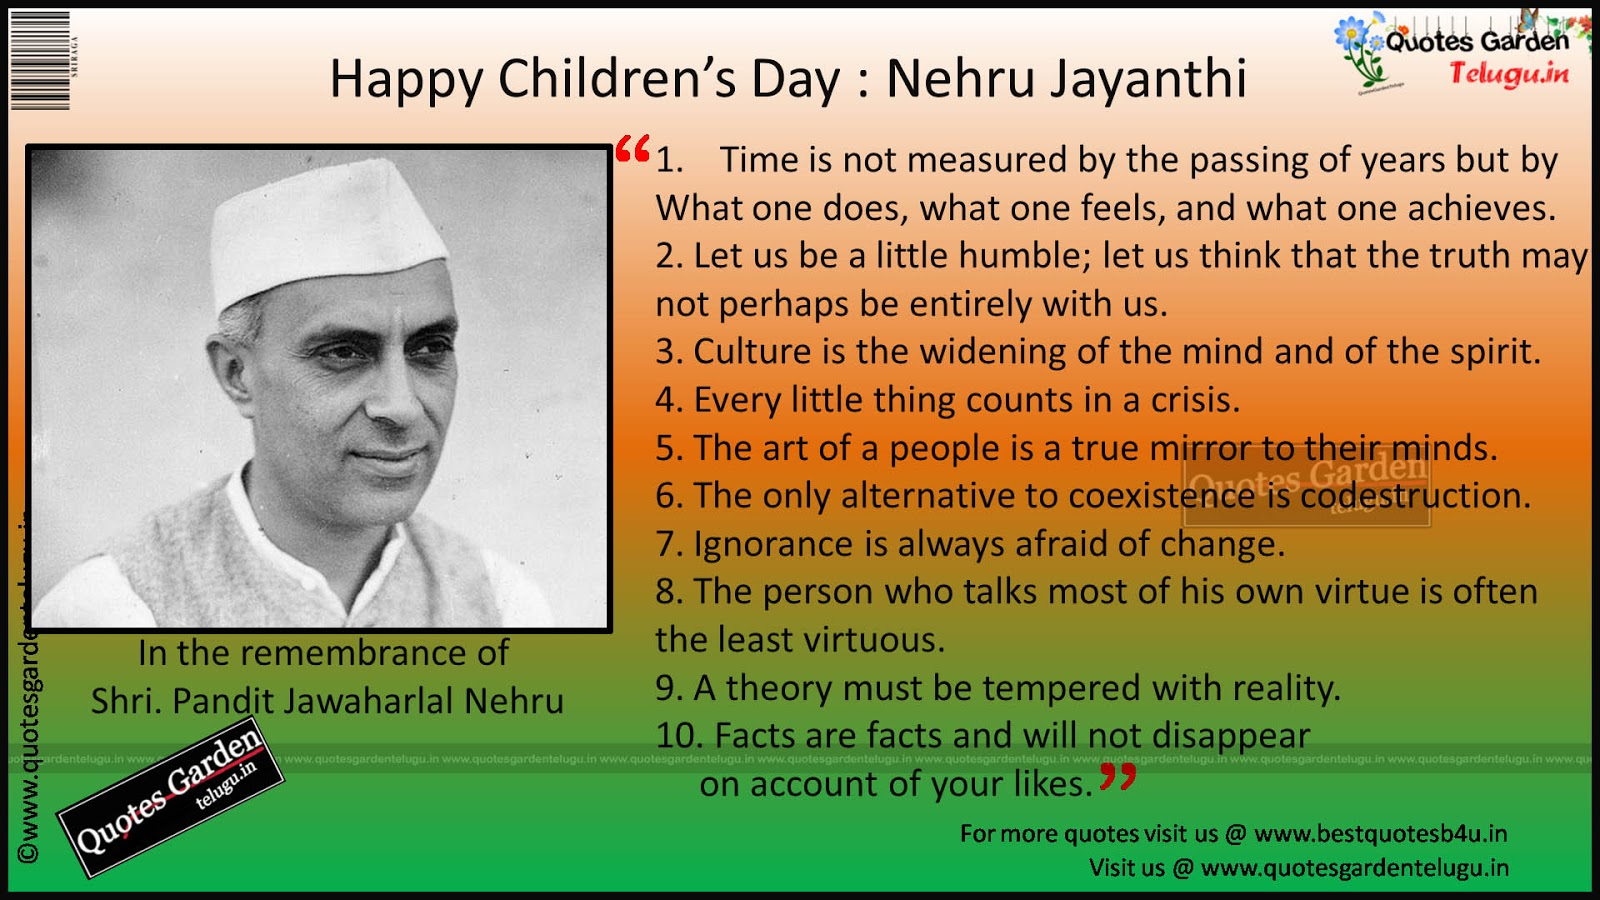 short essay on childrens day in india Best children's day essay & speech in english hindi kannada telugu tamil pdf free download chacha pandit jawaharlal nehru india.